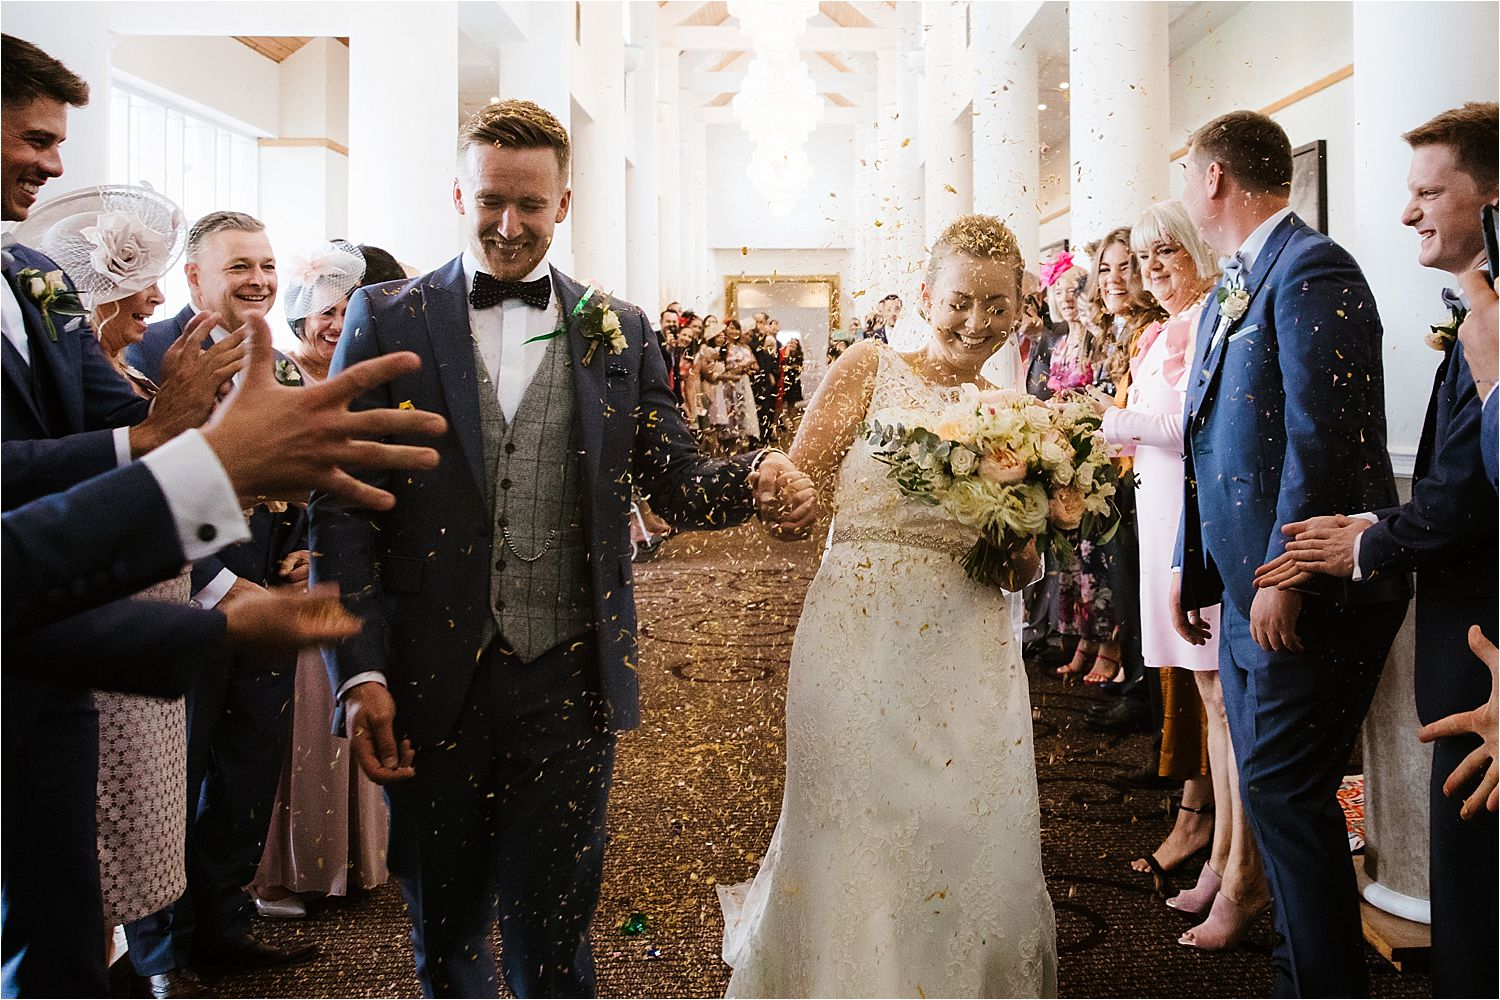 Bride, groom and confetti at their Low Wood Bat wedding. Groom's suit by Whitfield and Ward